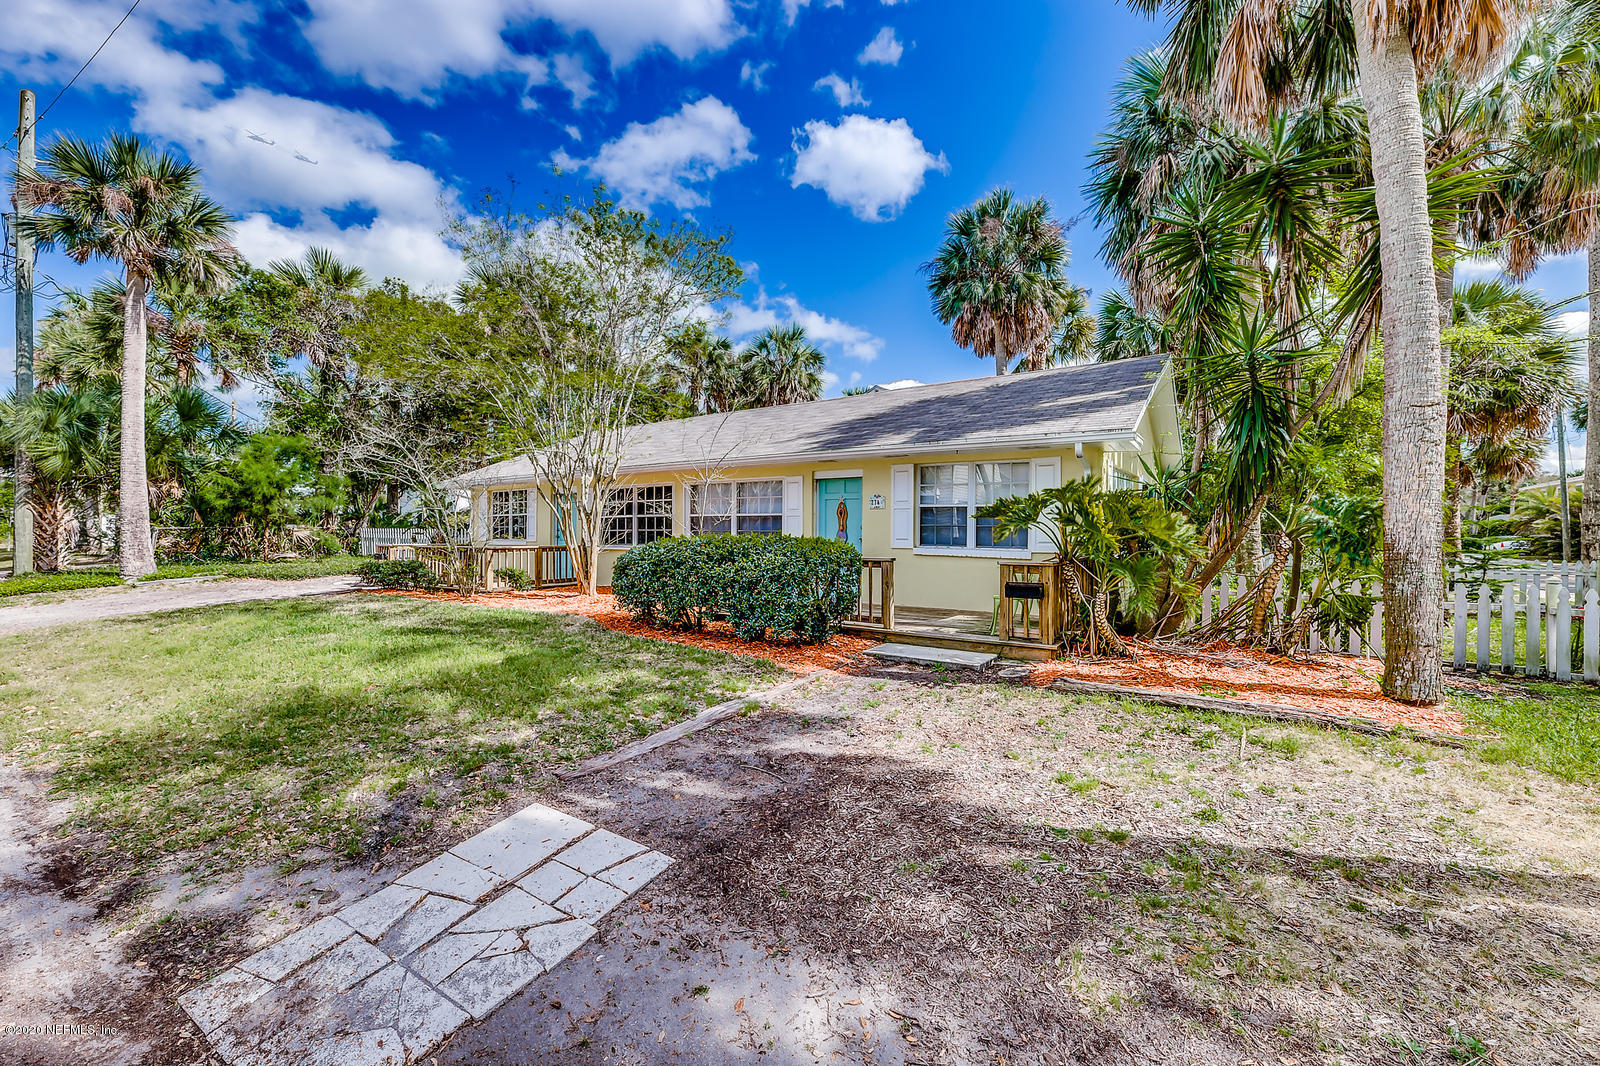 272 3RD, ATLANTIC BEACH, FLORIDA 32233, 2 Bedrooms Bedrooms, ,2 BathroomsBathrooms,Investment / MultiFamily,For sale,3RD,1056827